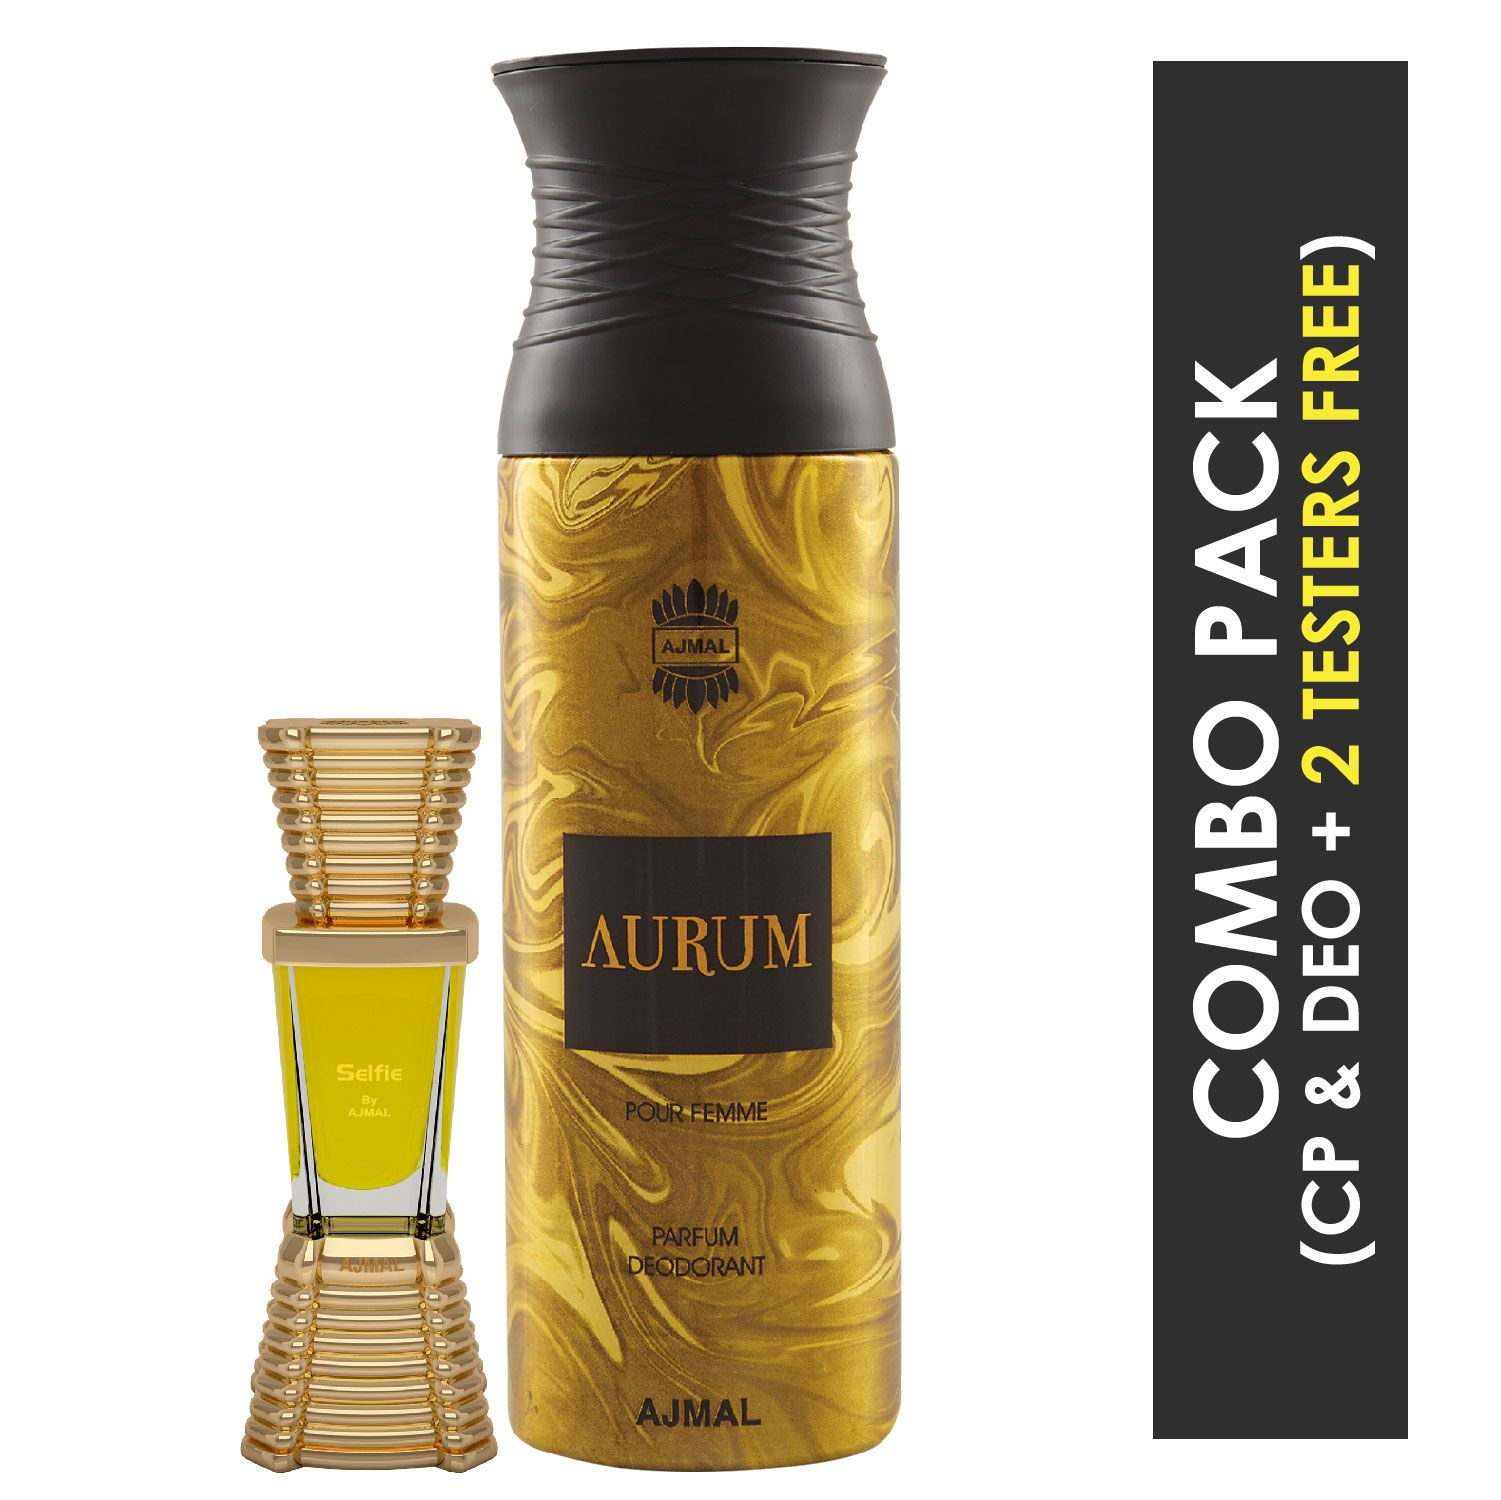 Ajmal | Ajmal Selfie Concentrated Perfume Oil Woody Aromatic Alcohol-free Attar 10ml for Men and Aurum Femme Deodorant Fruity Floral Fragrance 200ml for Women + 2 Parfum Testers FREE